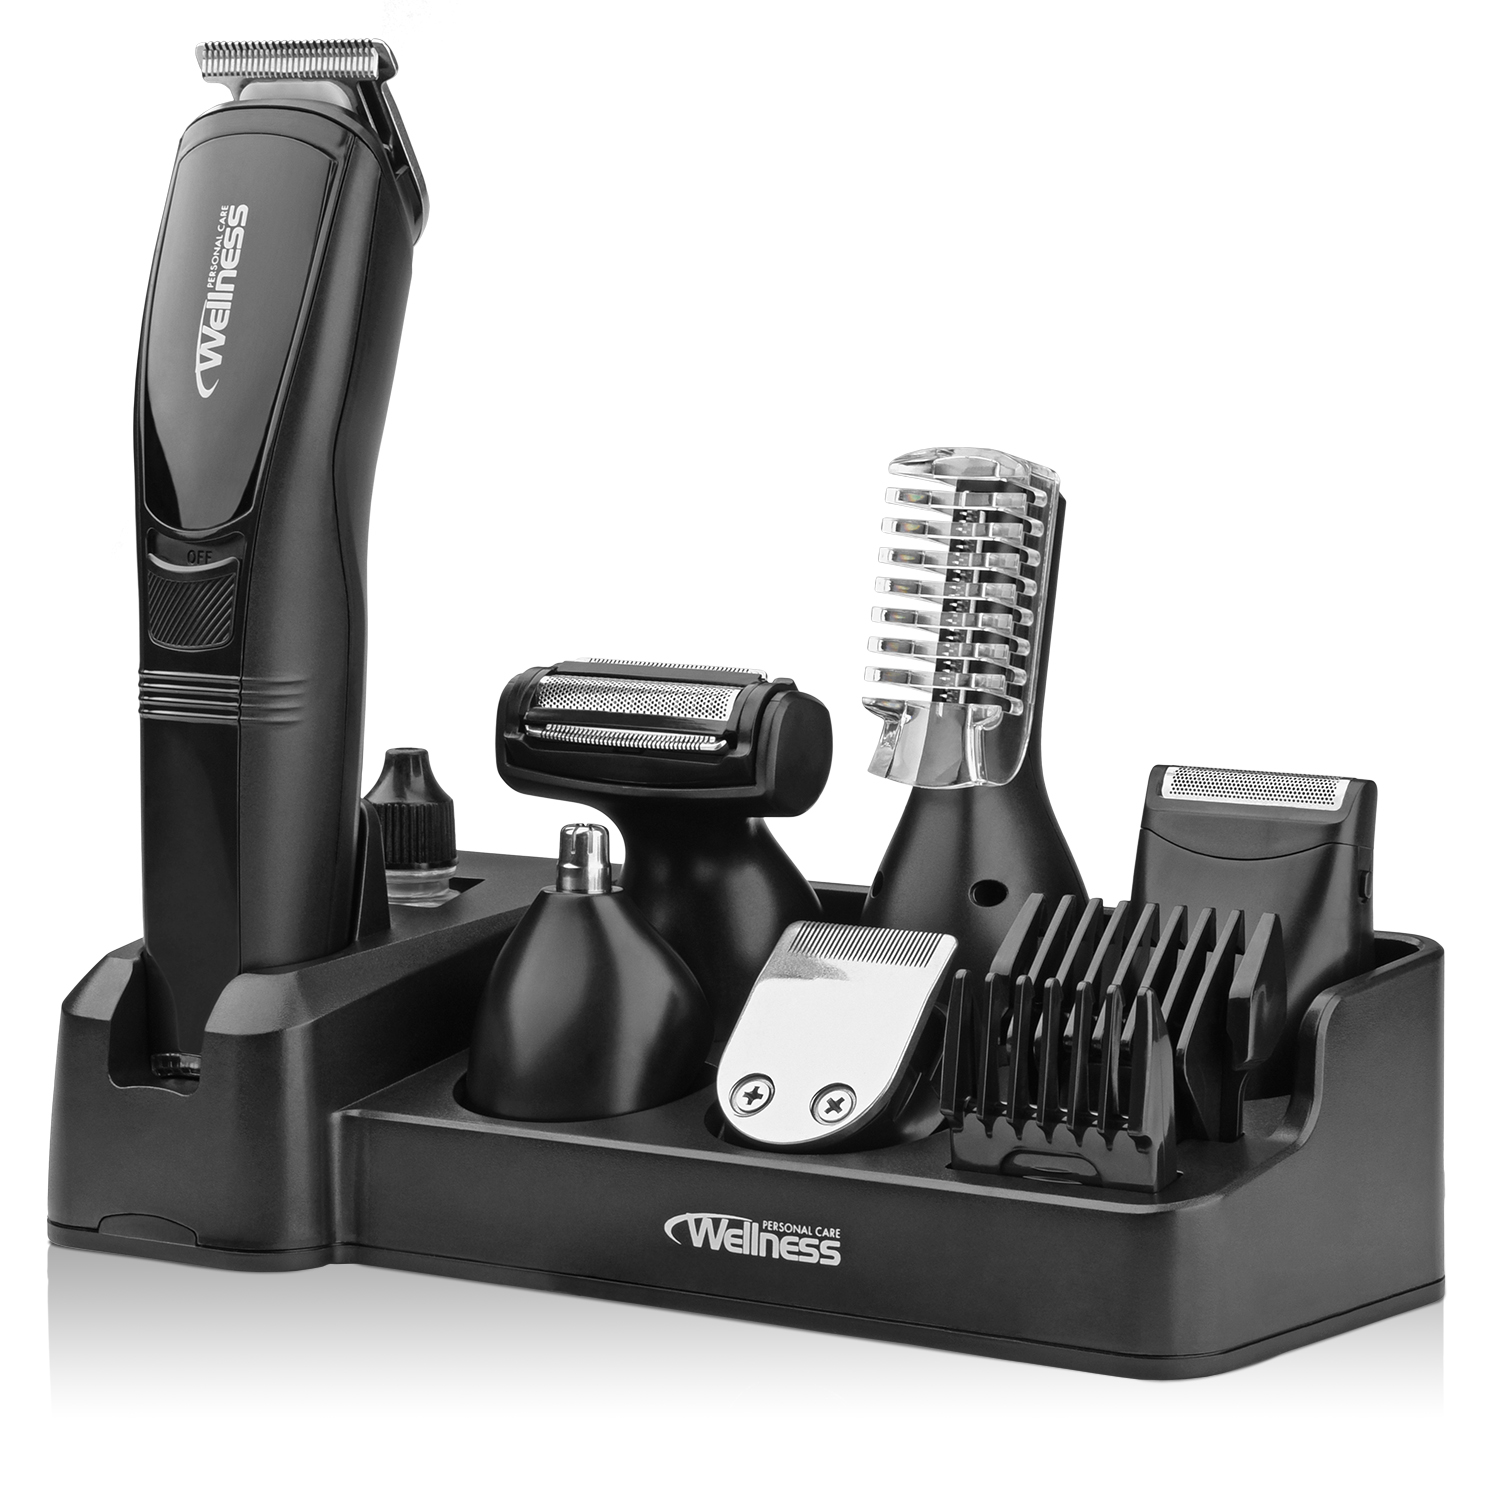 Wellness Personal Care Pro Series Men's 8-in-1 Professional Rechargeable Grooming Kit